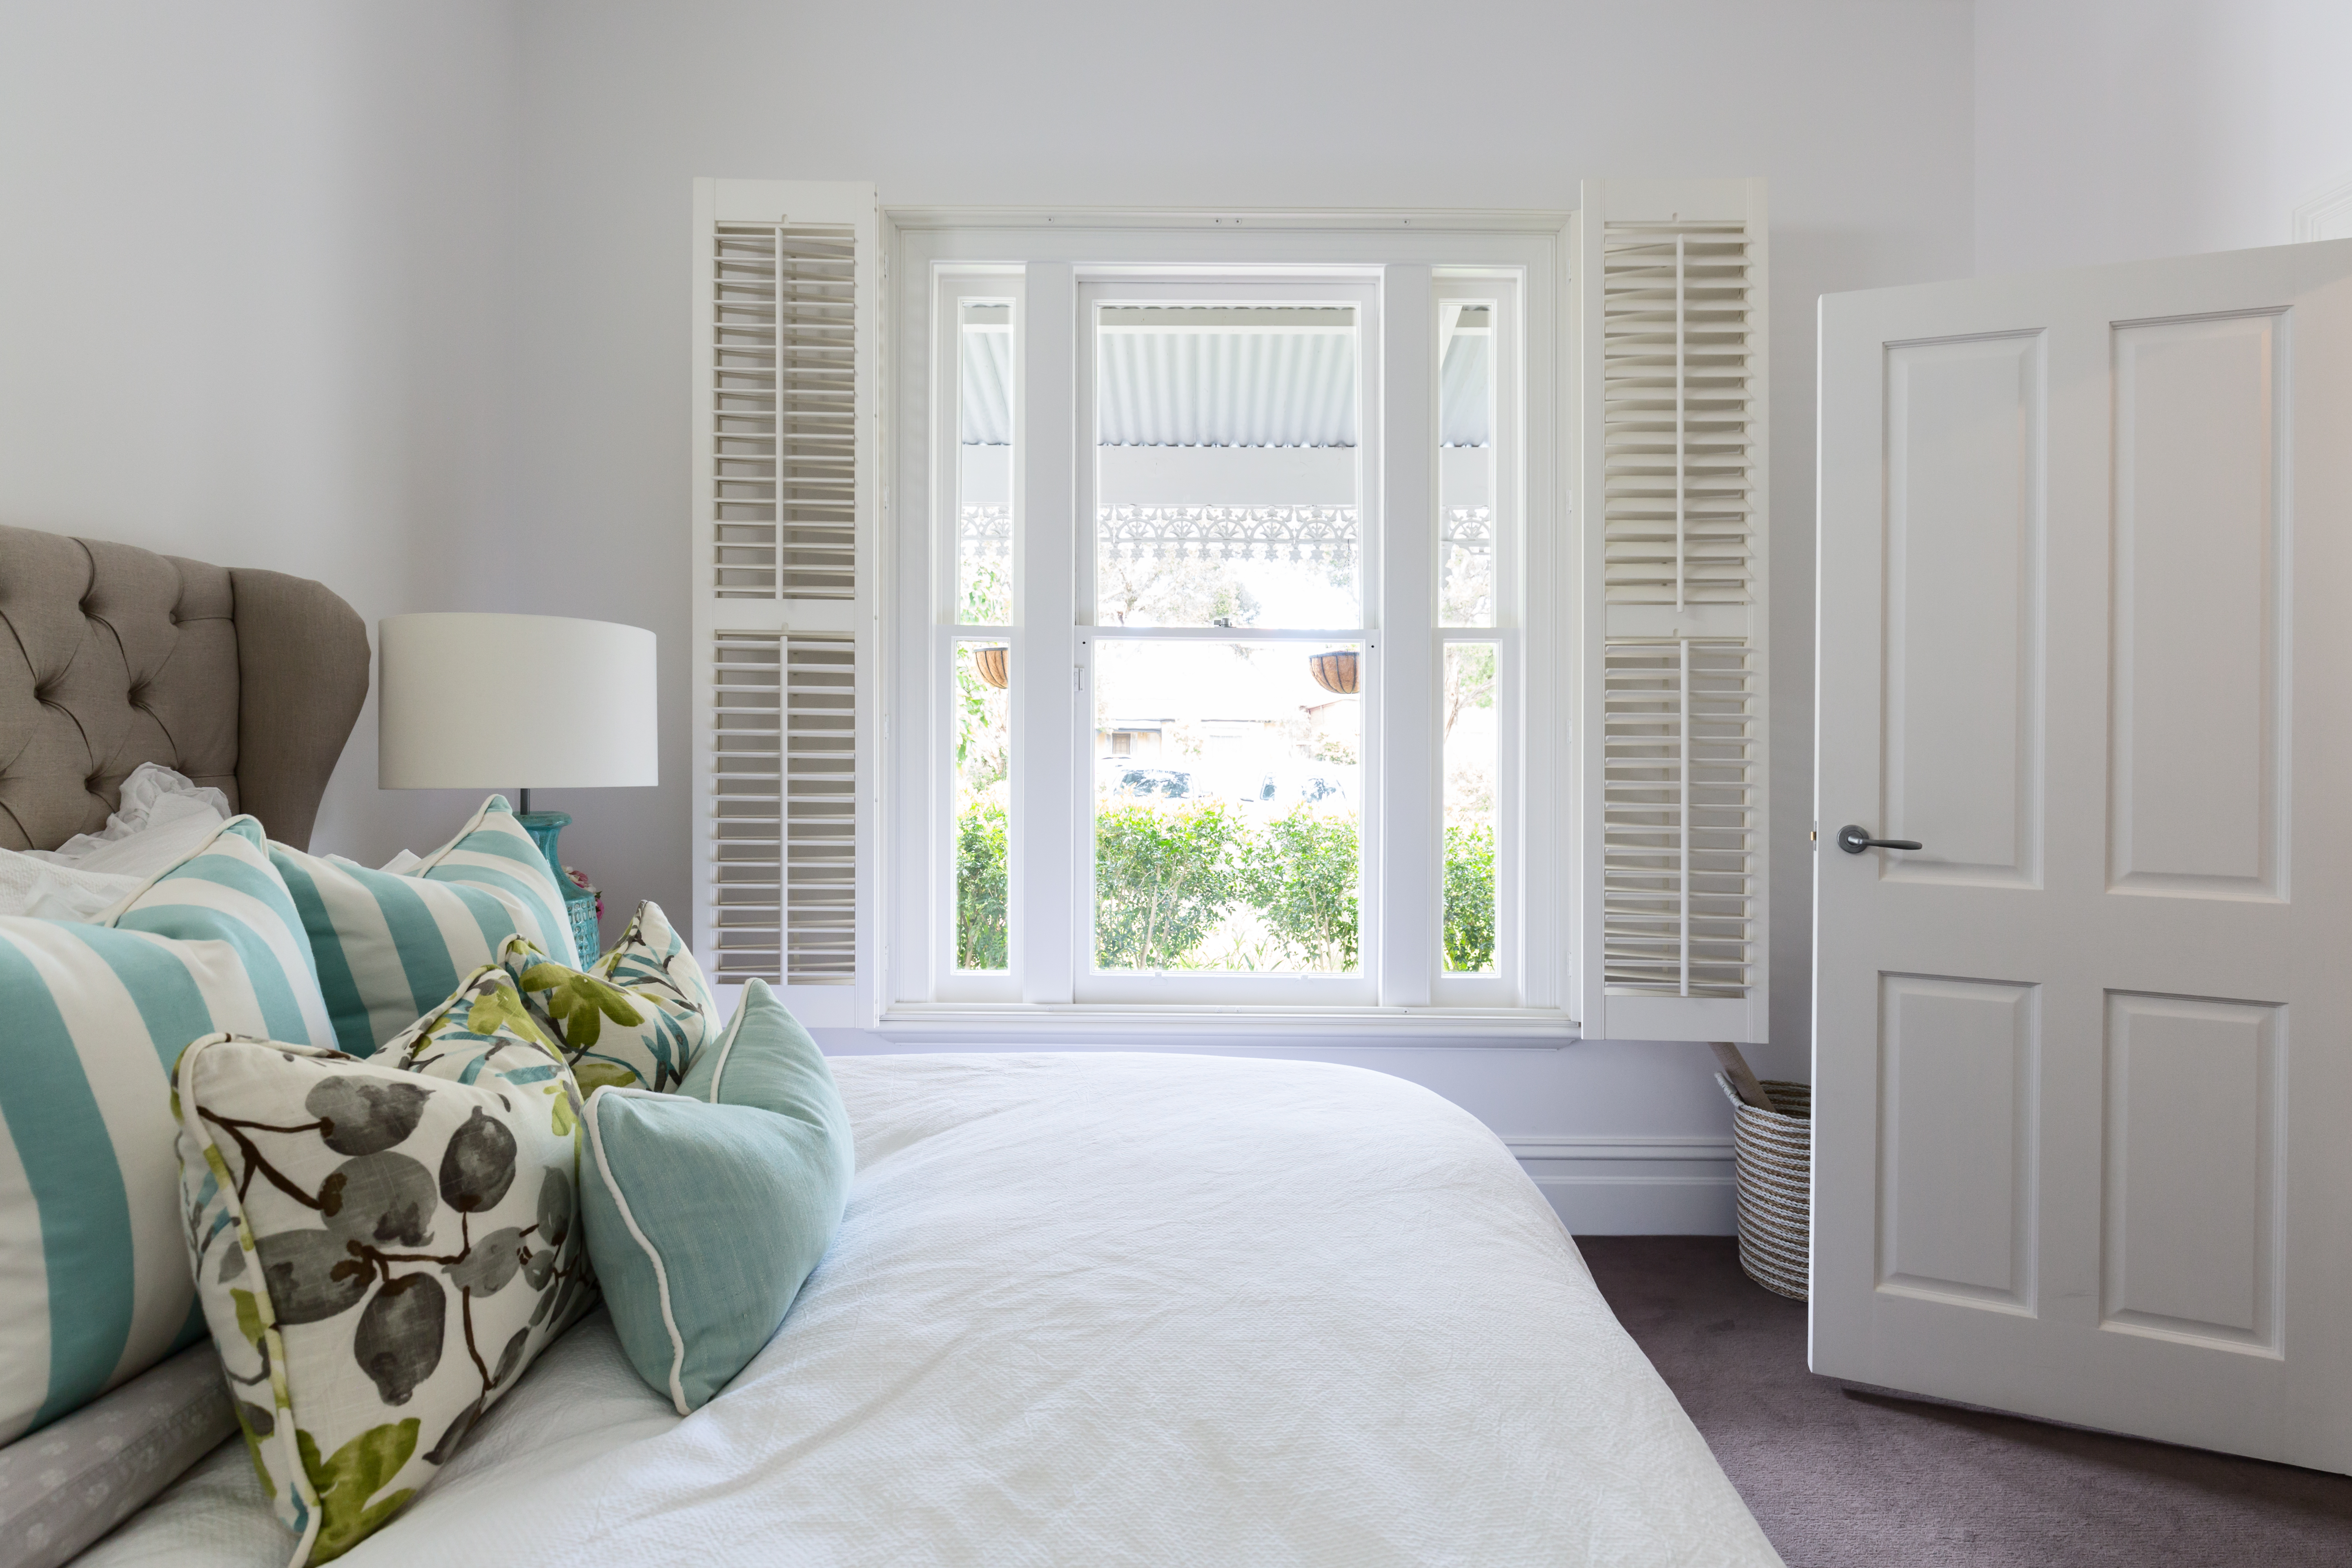 What to look for when choosing blinds for windows